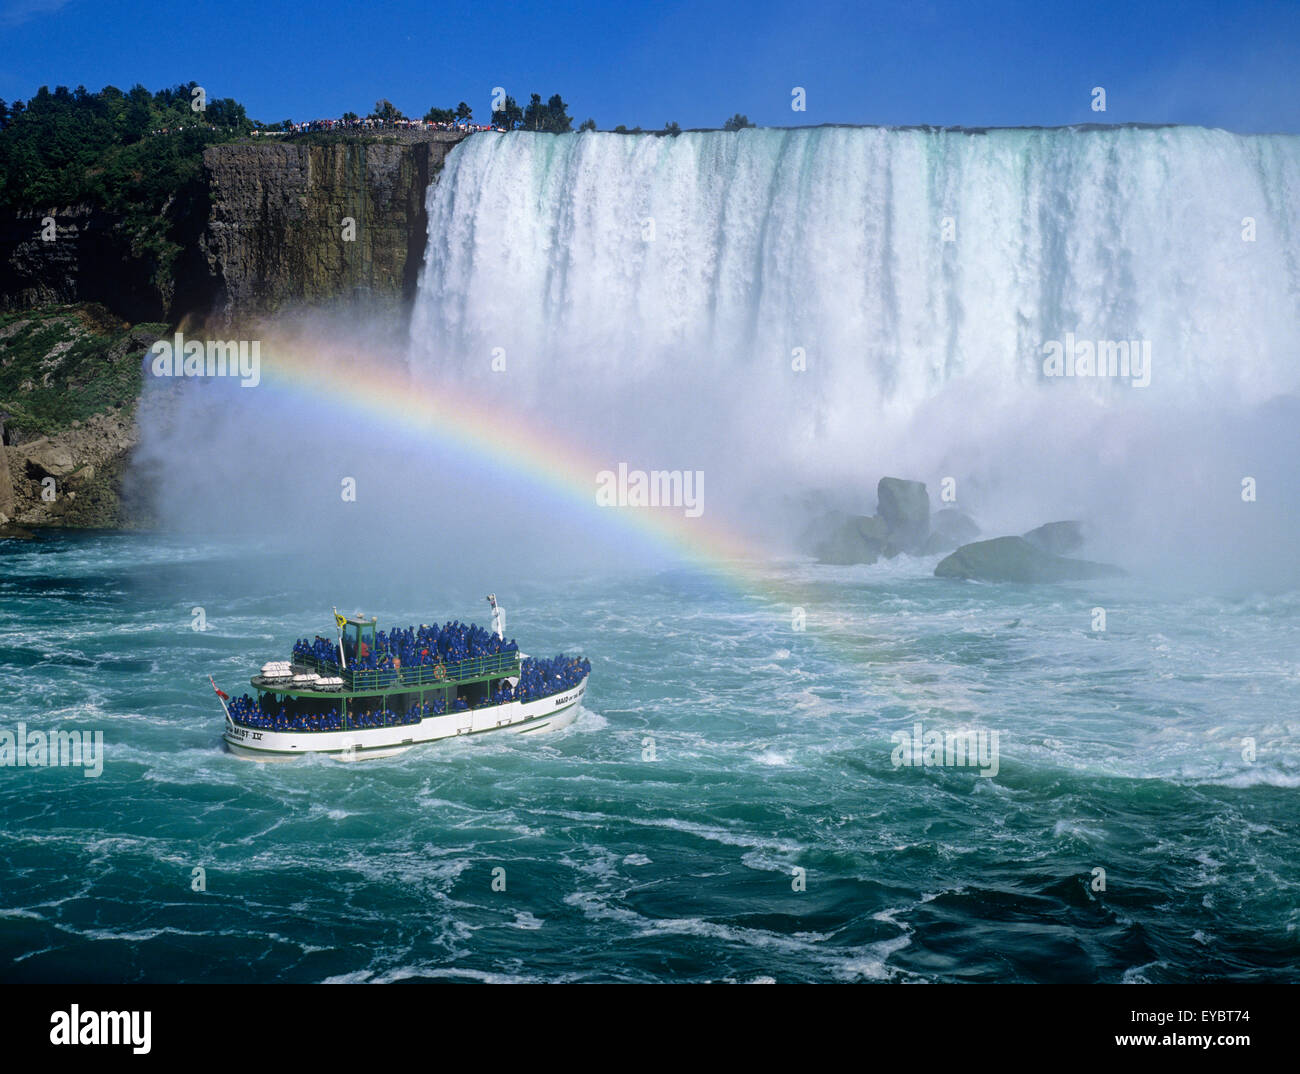 North America Canada Ontario Niagara Falls Horseshoe Falls Maid Of The Mist tour boat - Stock Image